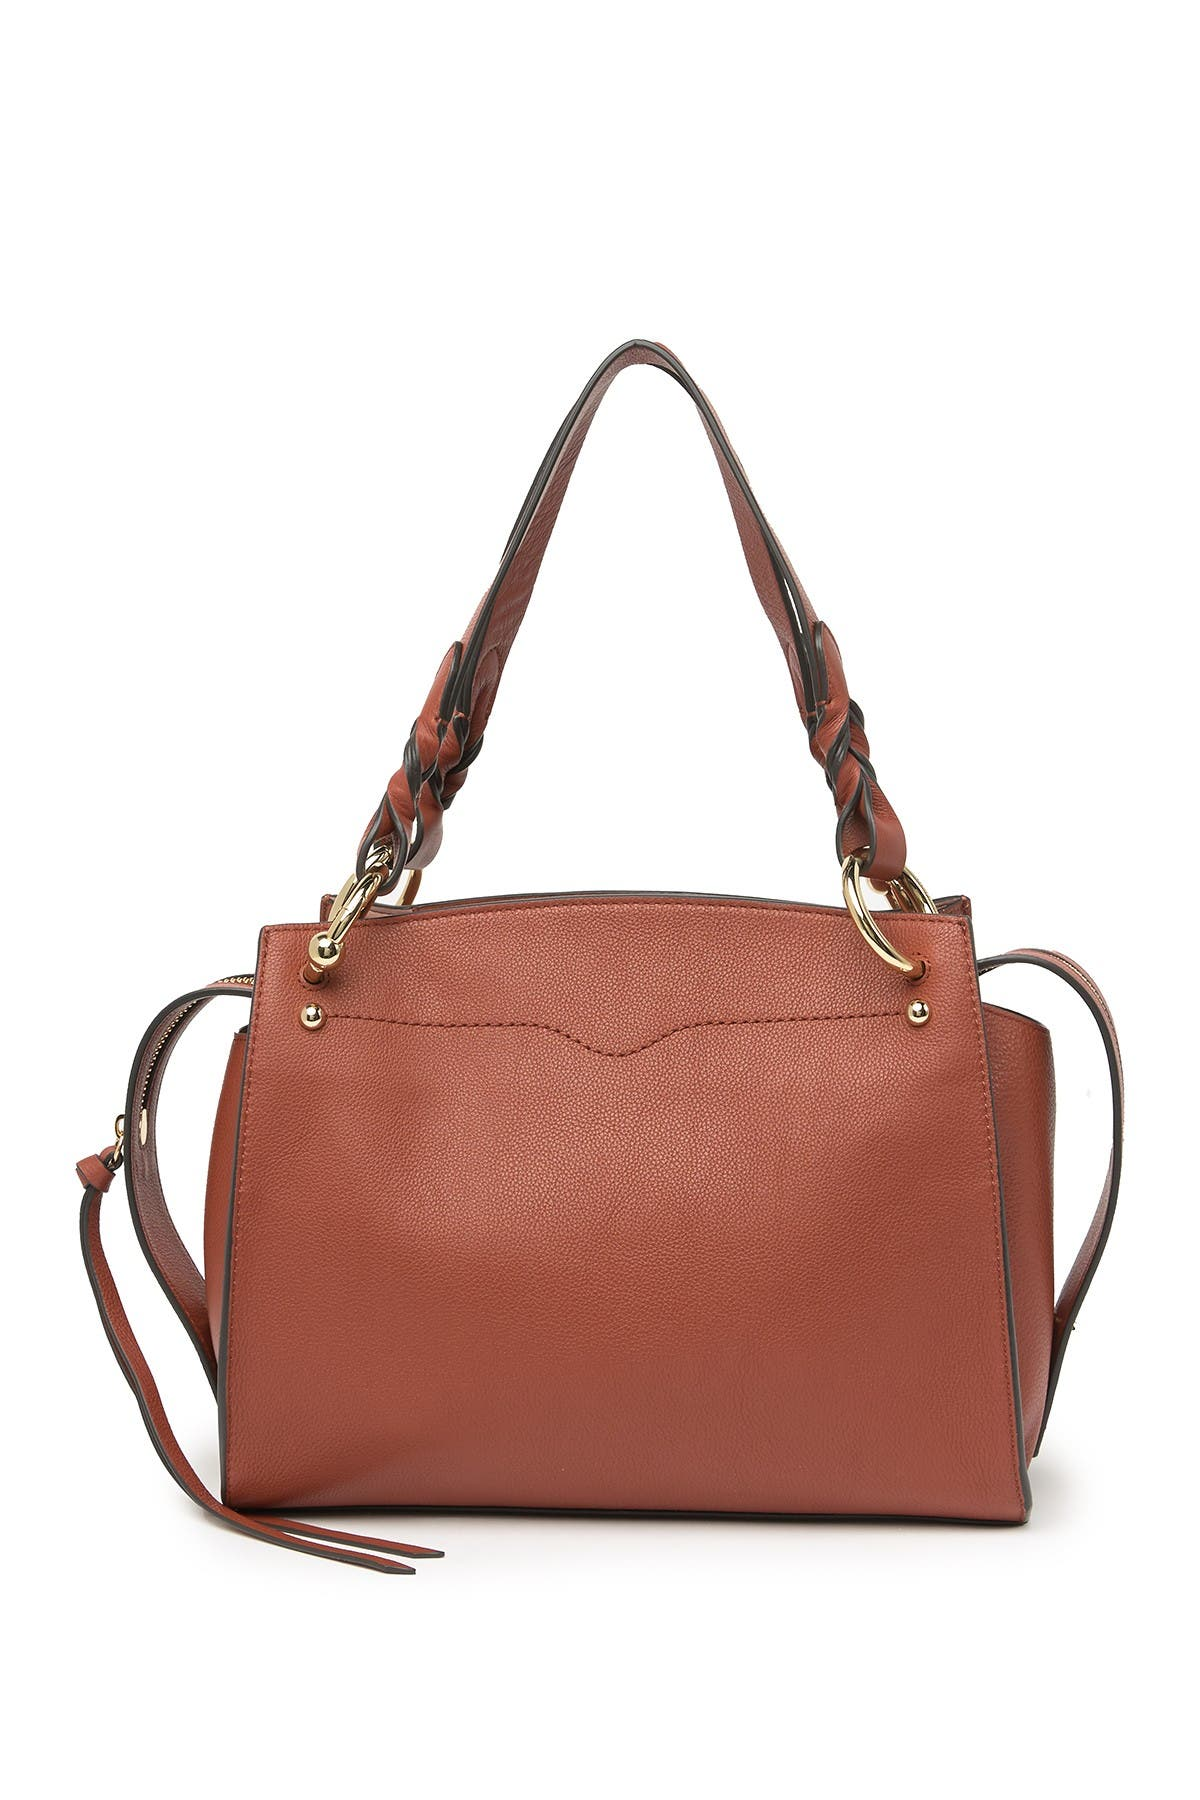 Image of Rebecca Minkoff Kate Soft Satchel